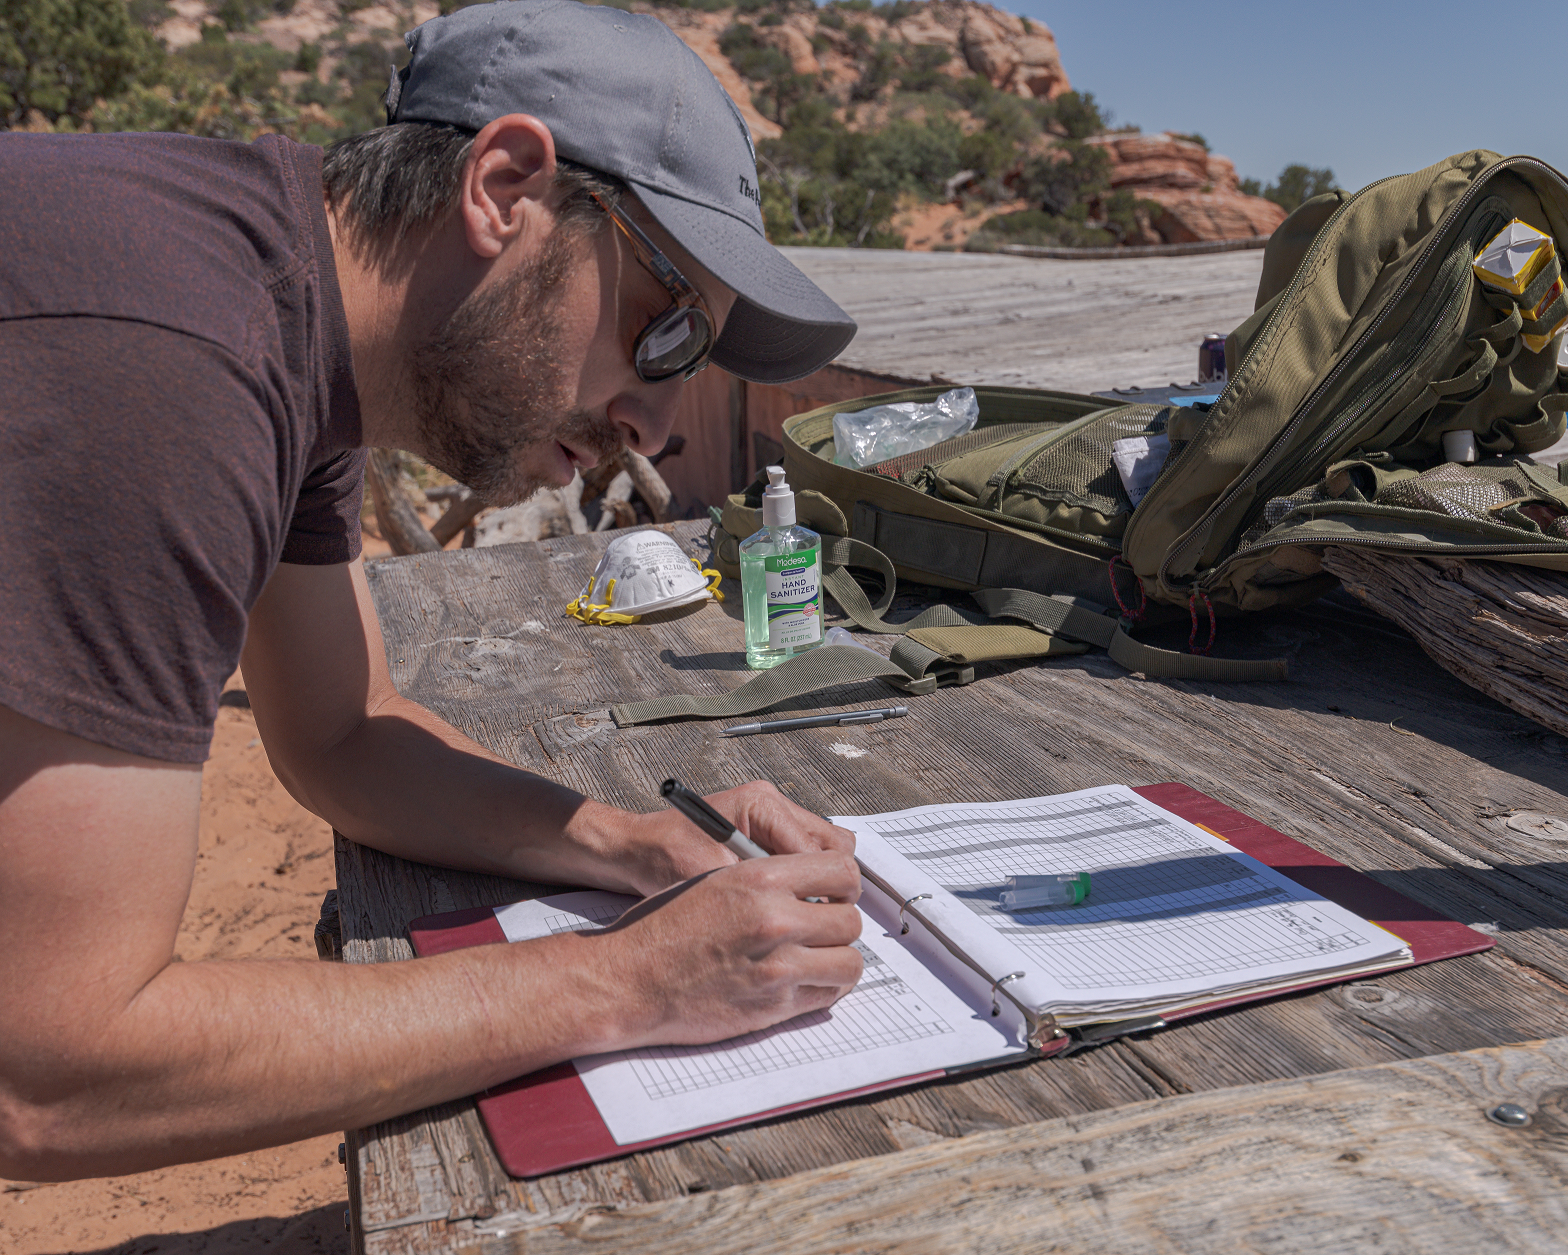 Biologist and Program Lead Tim Hauck records Condor 1K's weight and other data collected